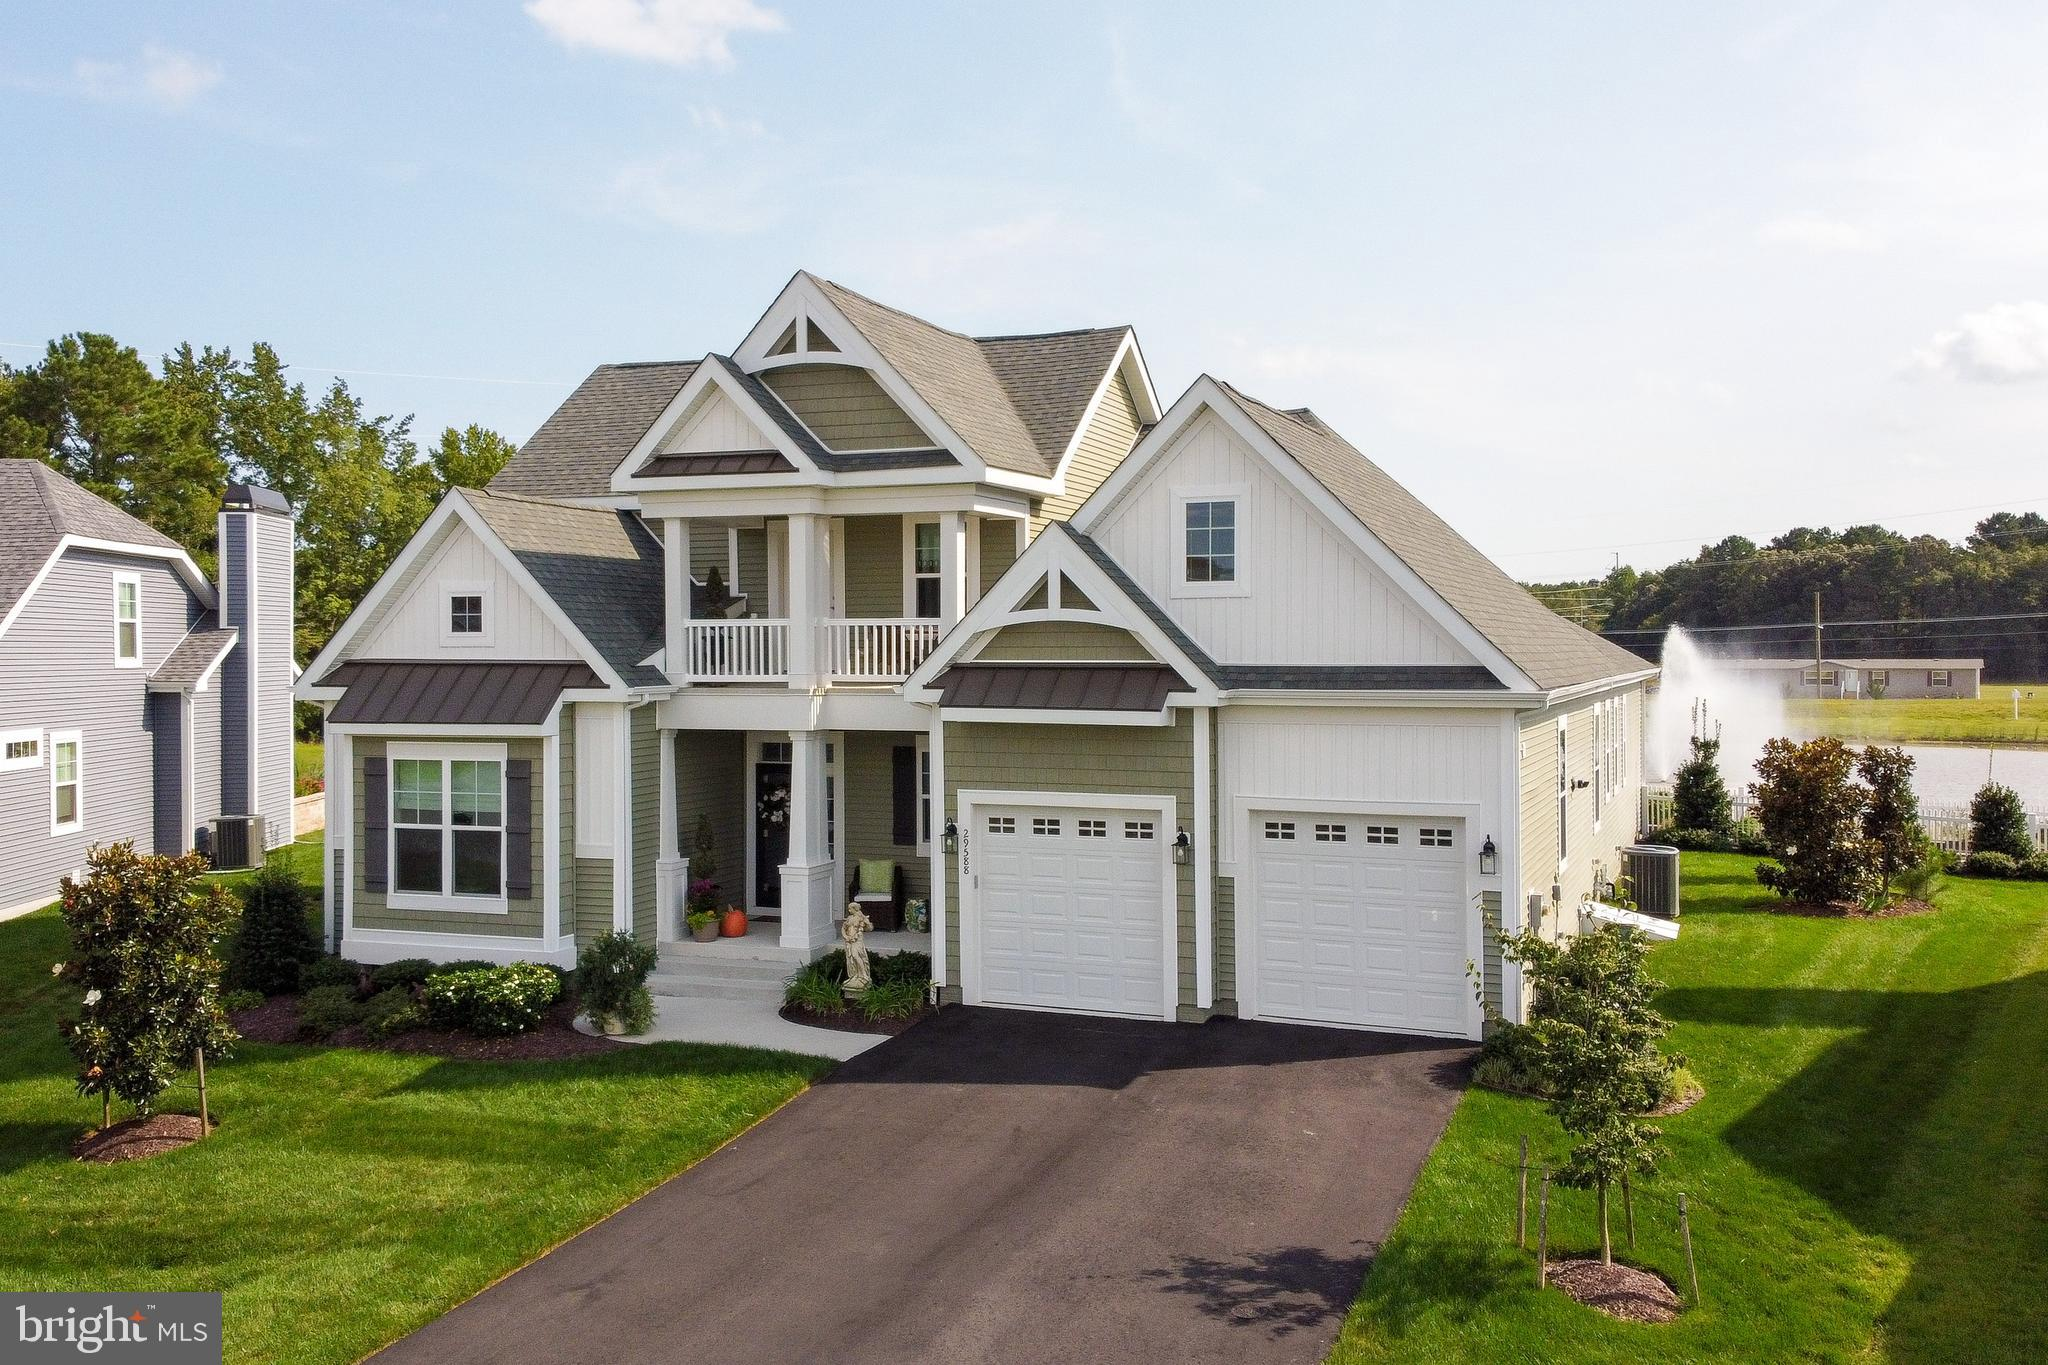 CAREFREE LIVING awaits you in this gorgeous, pond front 3 bedroom, 3.5 bath home in the amenity-rich